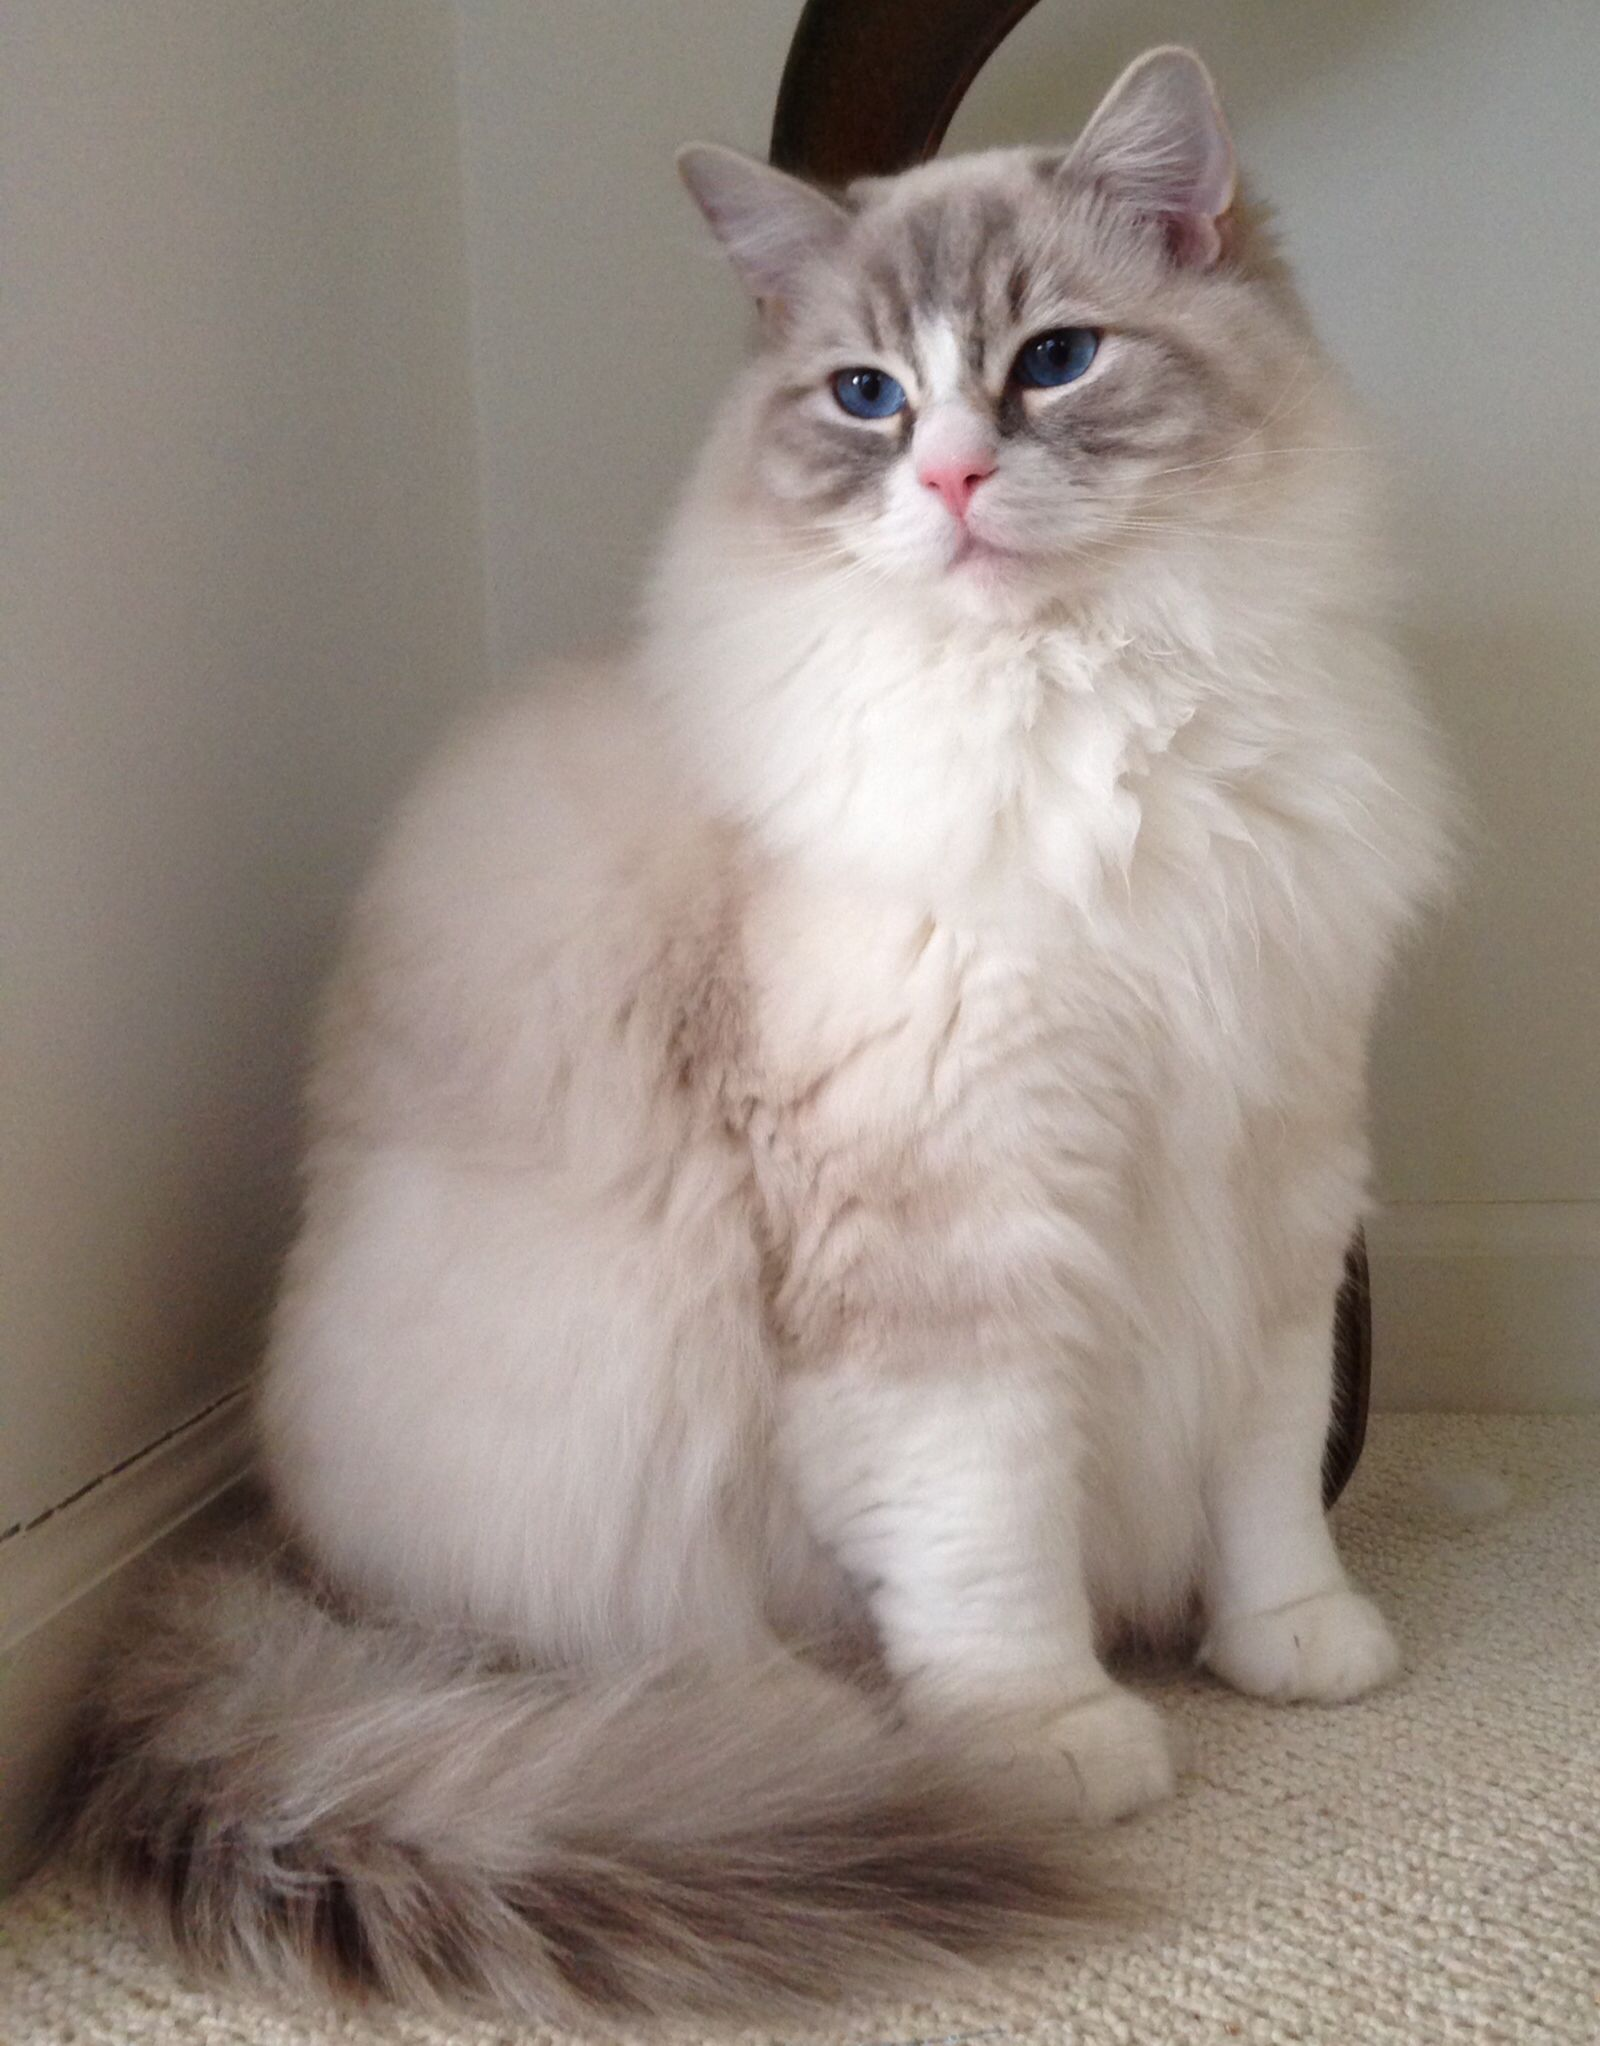 Coopurr at 1 year old. Coopurr is a Bluepoint Lynx High